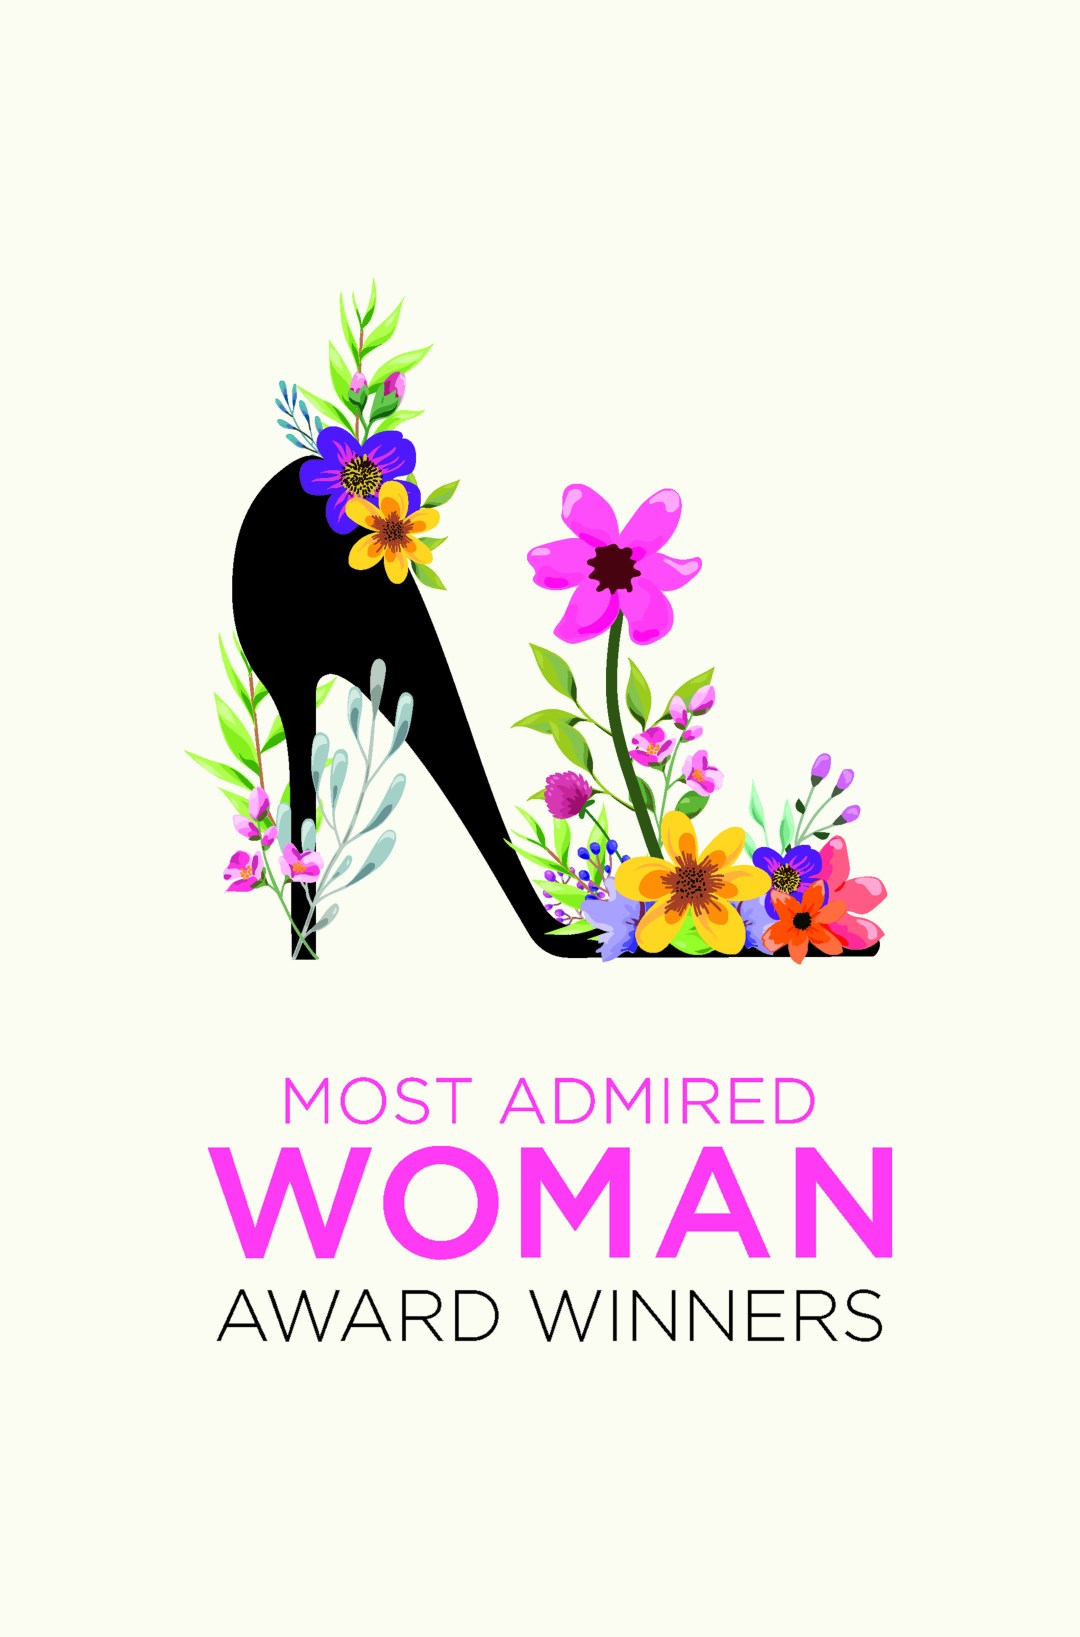 Get Your Tickets for the Most Admired Woman event!